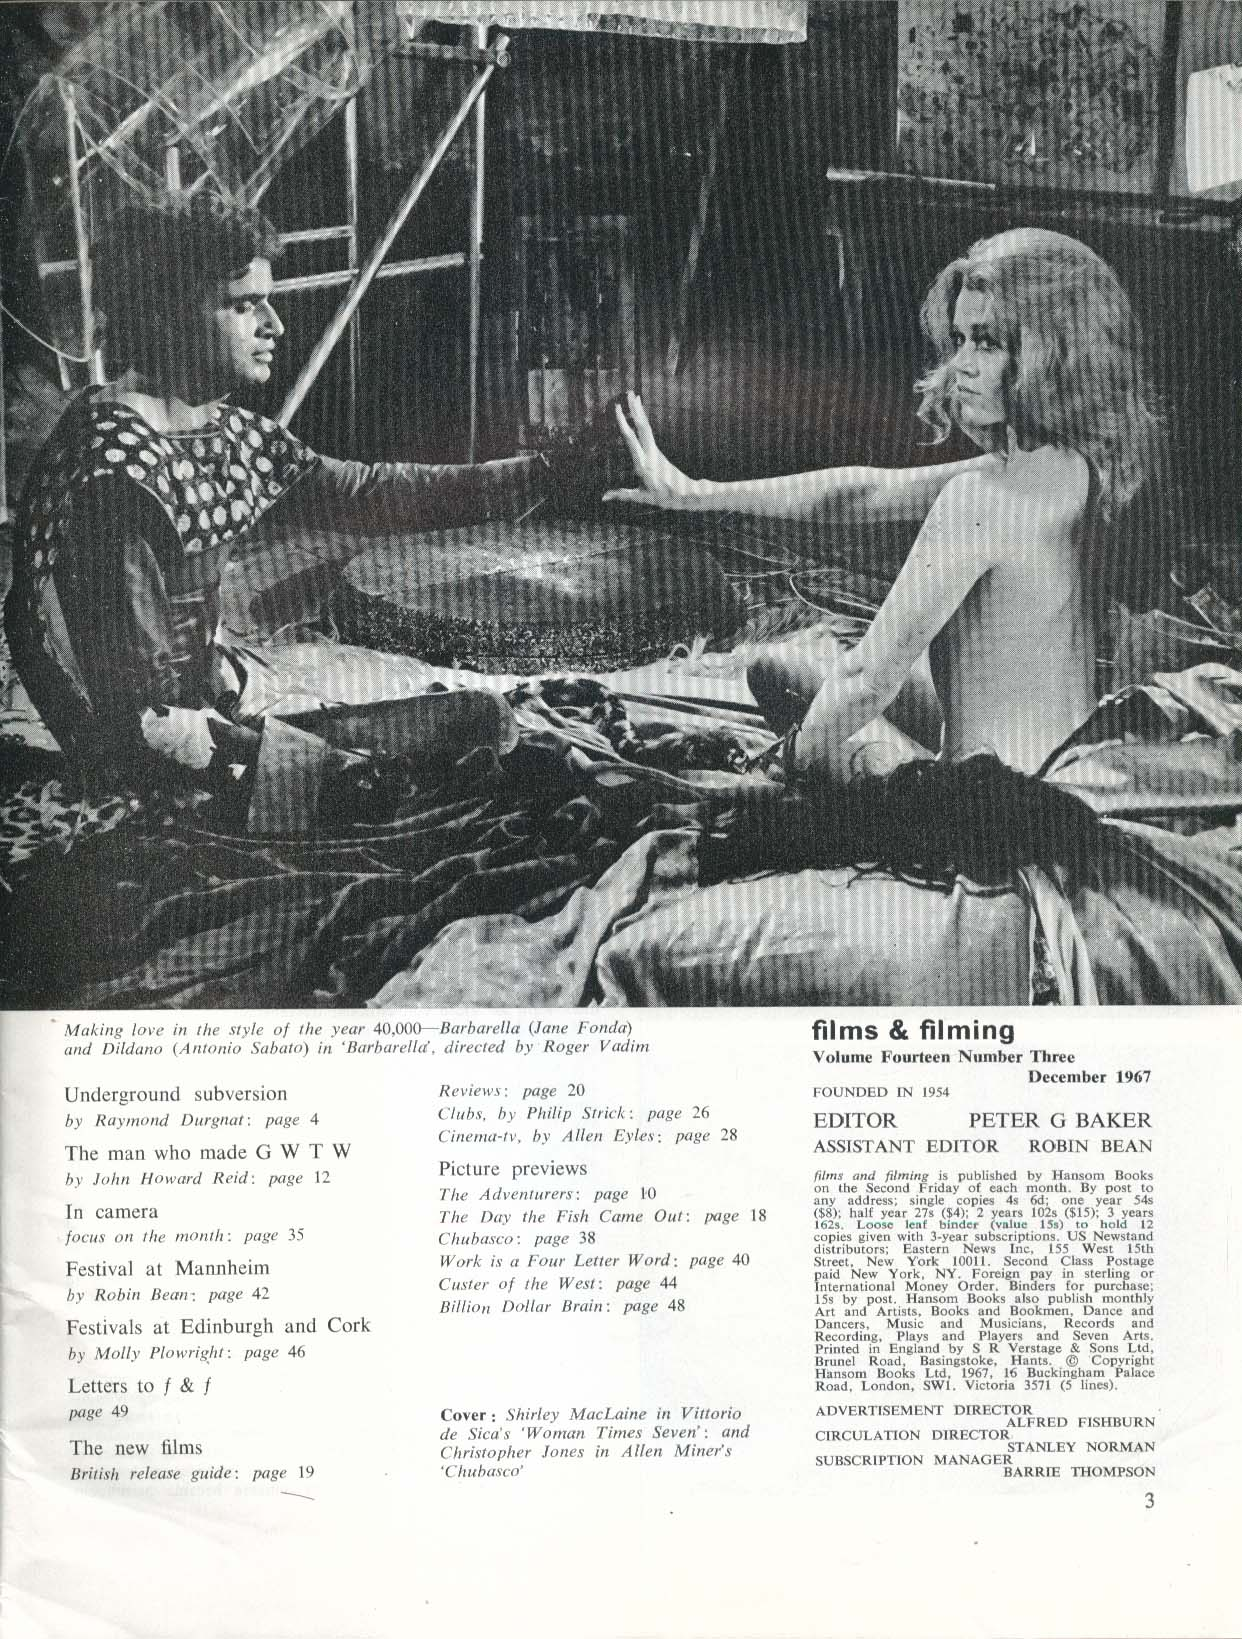 FILMS & FILMING Raymond Durgnat Molly Plowright Barbarella Jane Fonda 12 1967